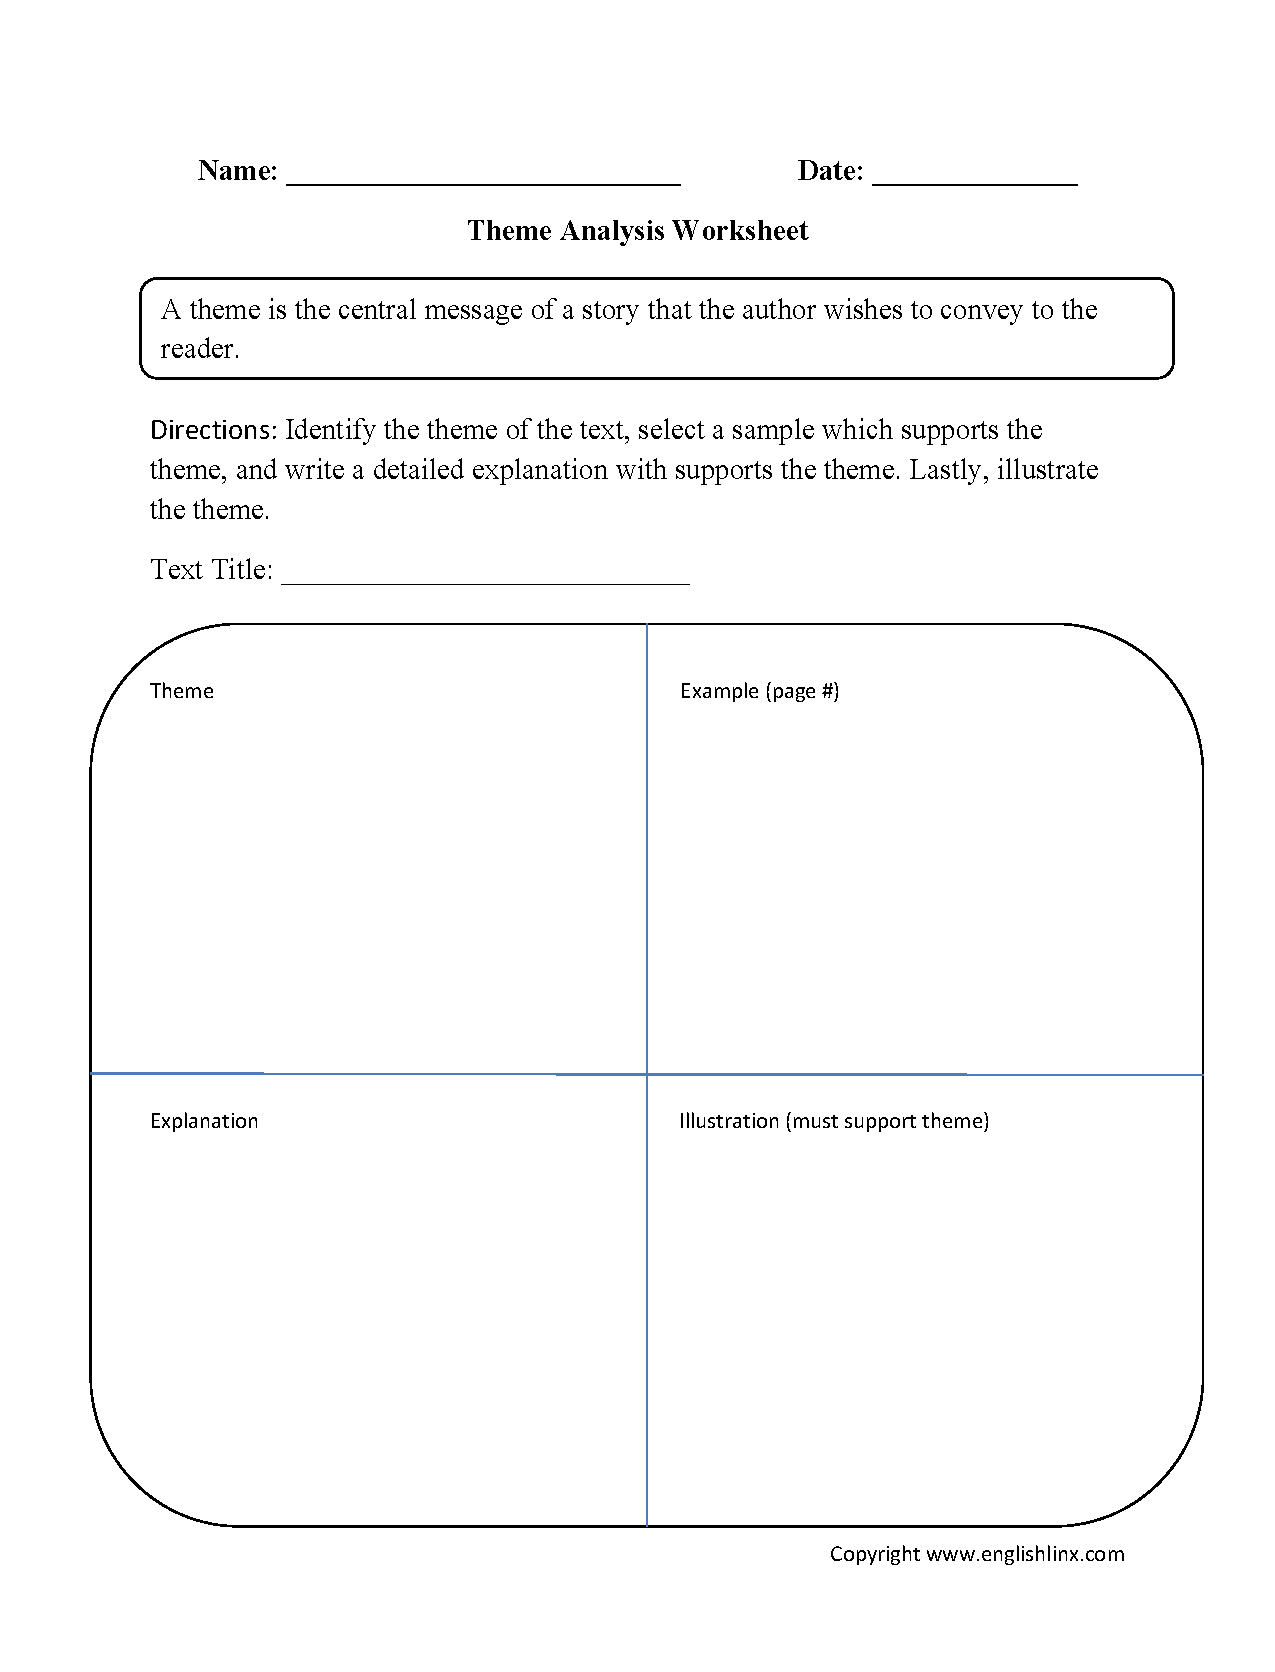 Theme Analysis Worksheet | Education - Language Arts | Pinterest ...